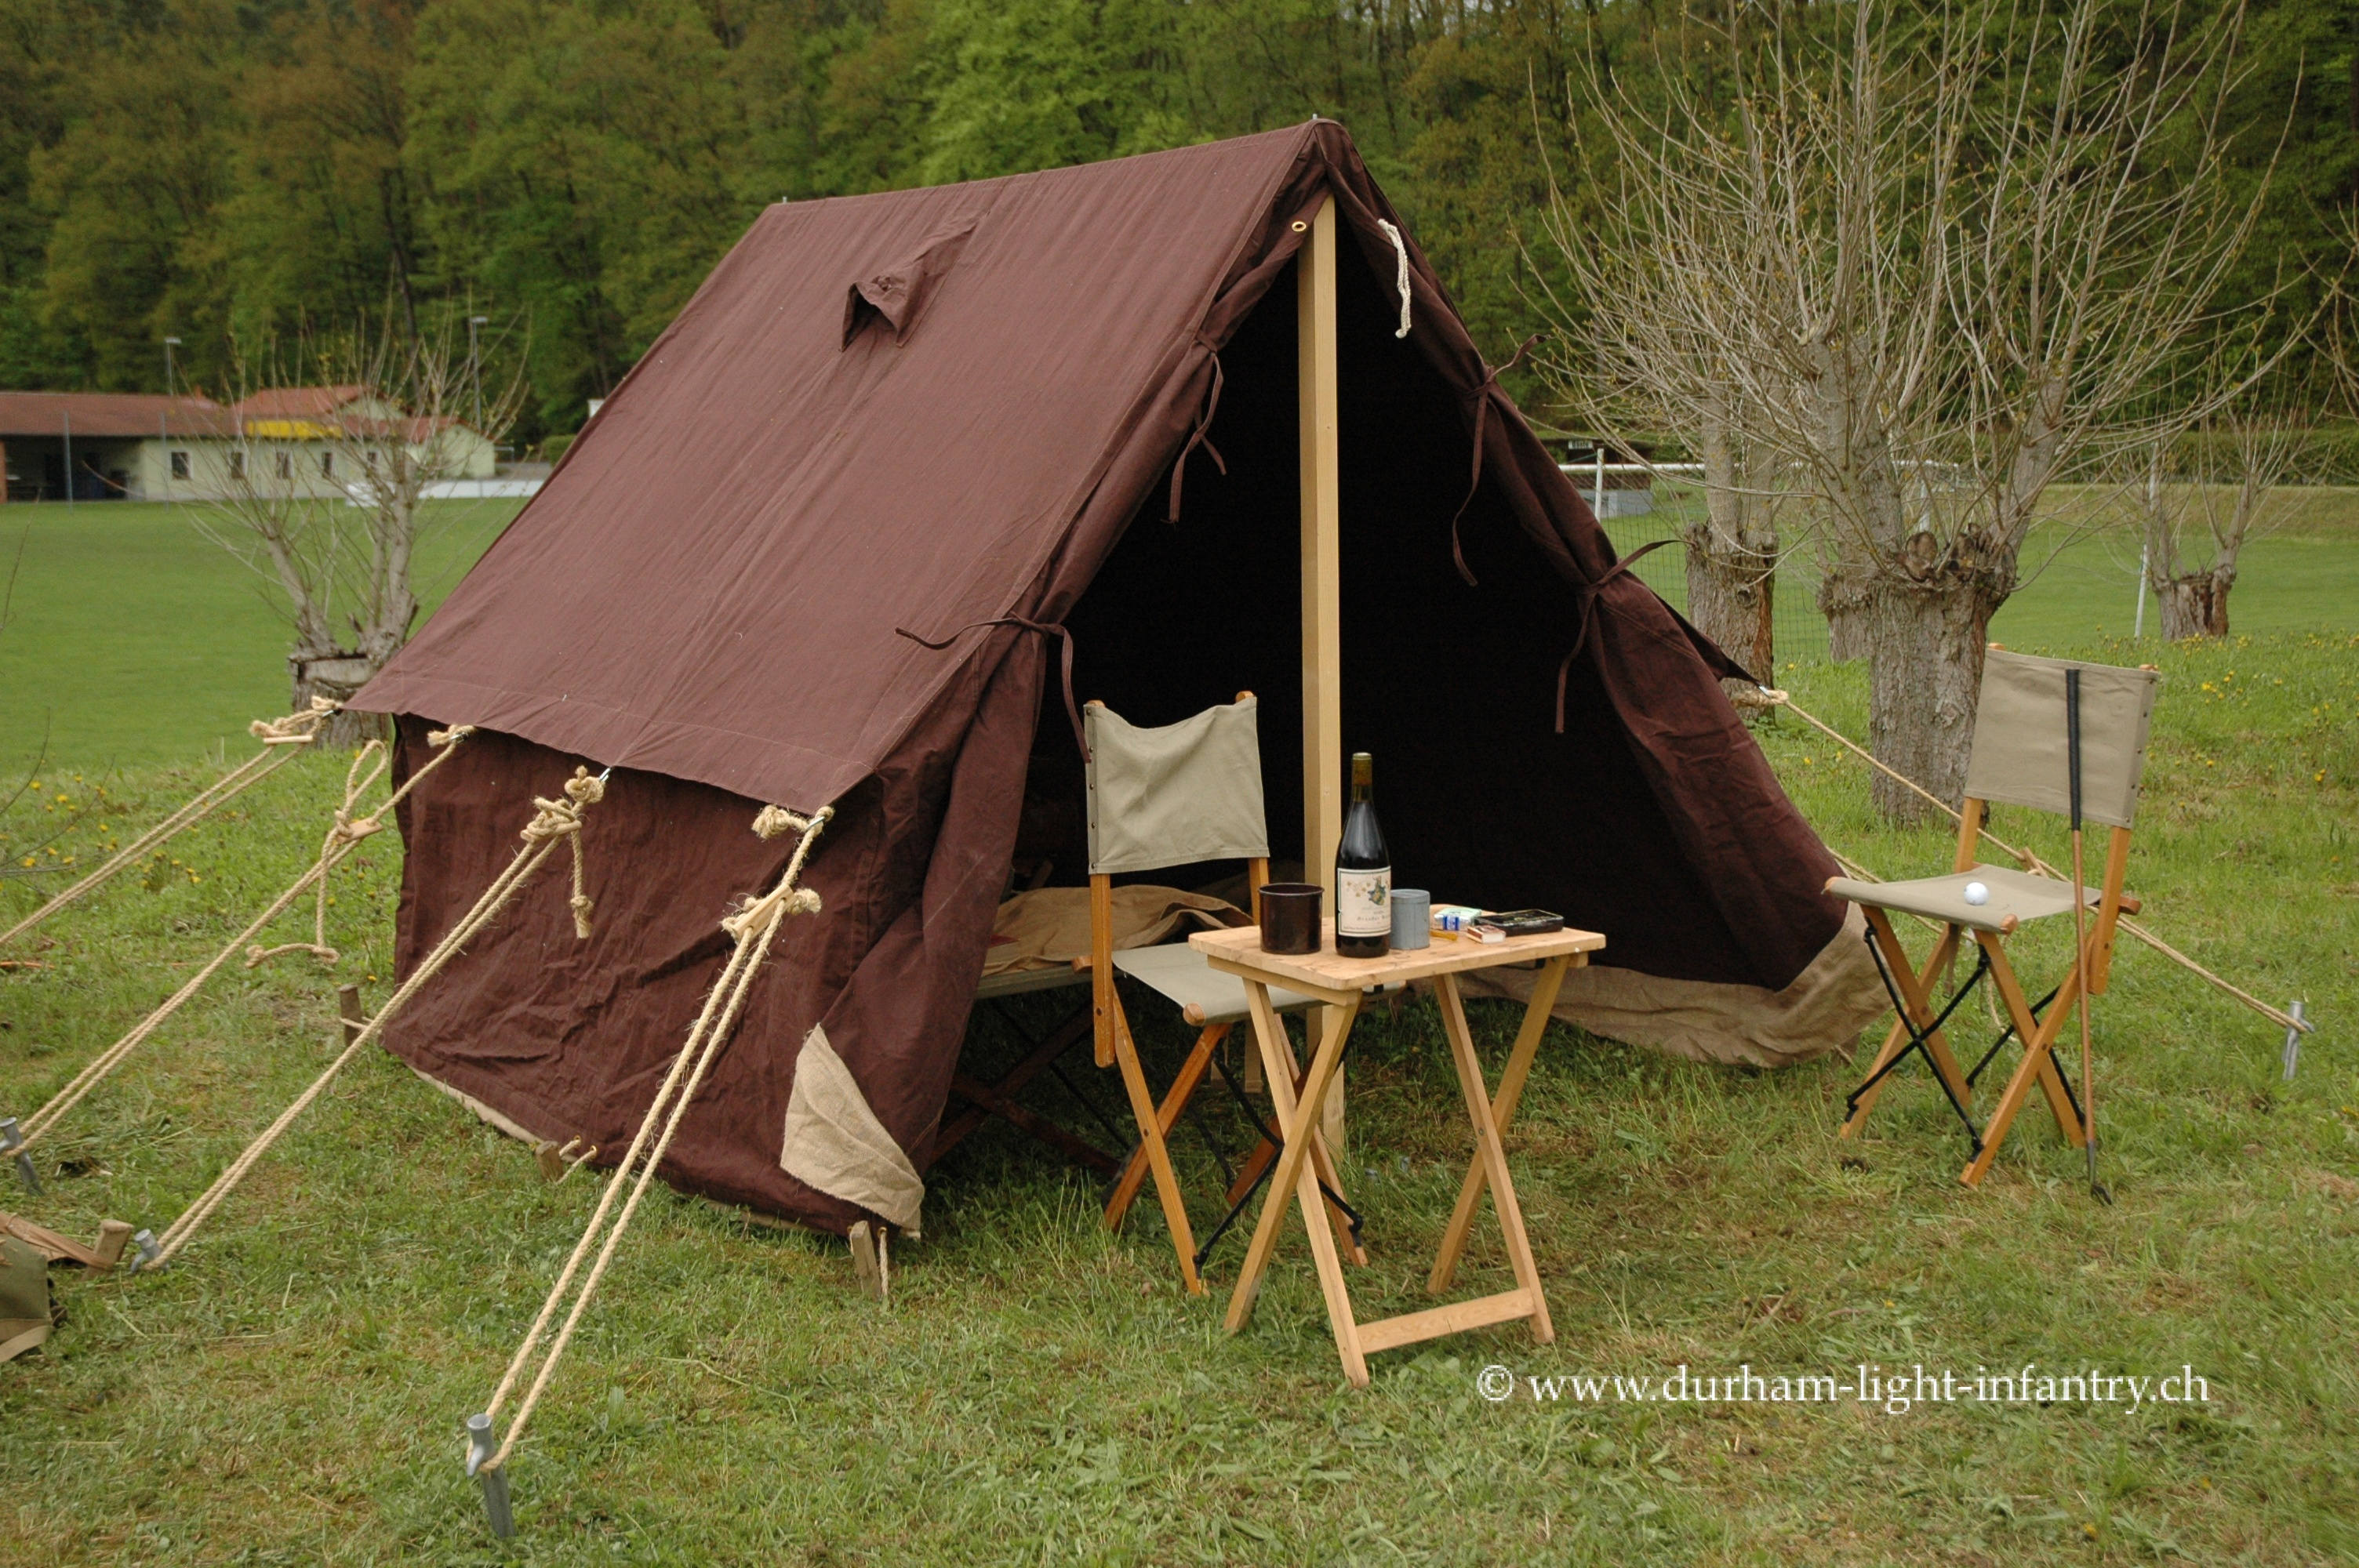 WW2 British Army Officer's tent